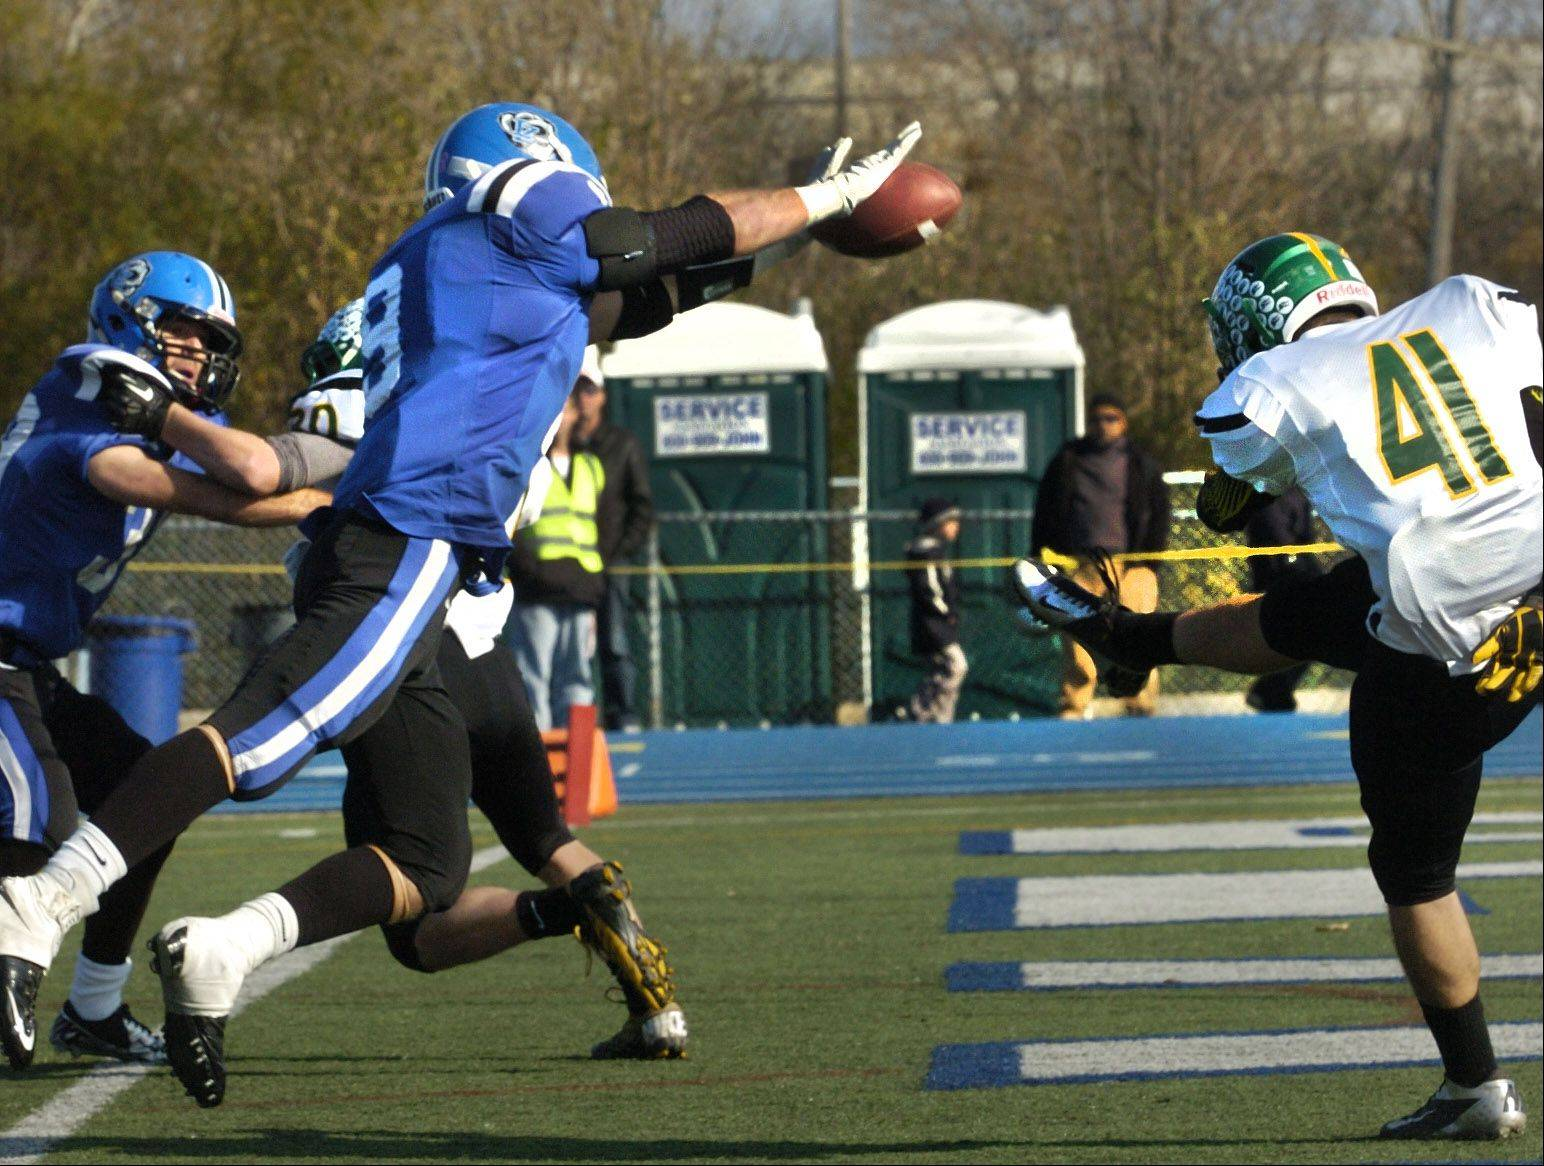 Colton Moskal of Lake Zurich blocks a Crystal Lake South punt for a safety in the first half of the Class 7A state playoff opener.